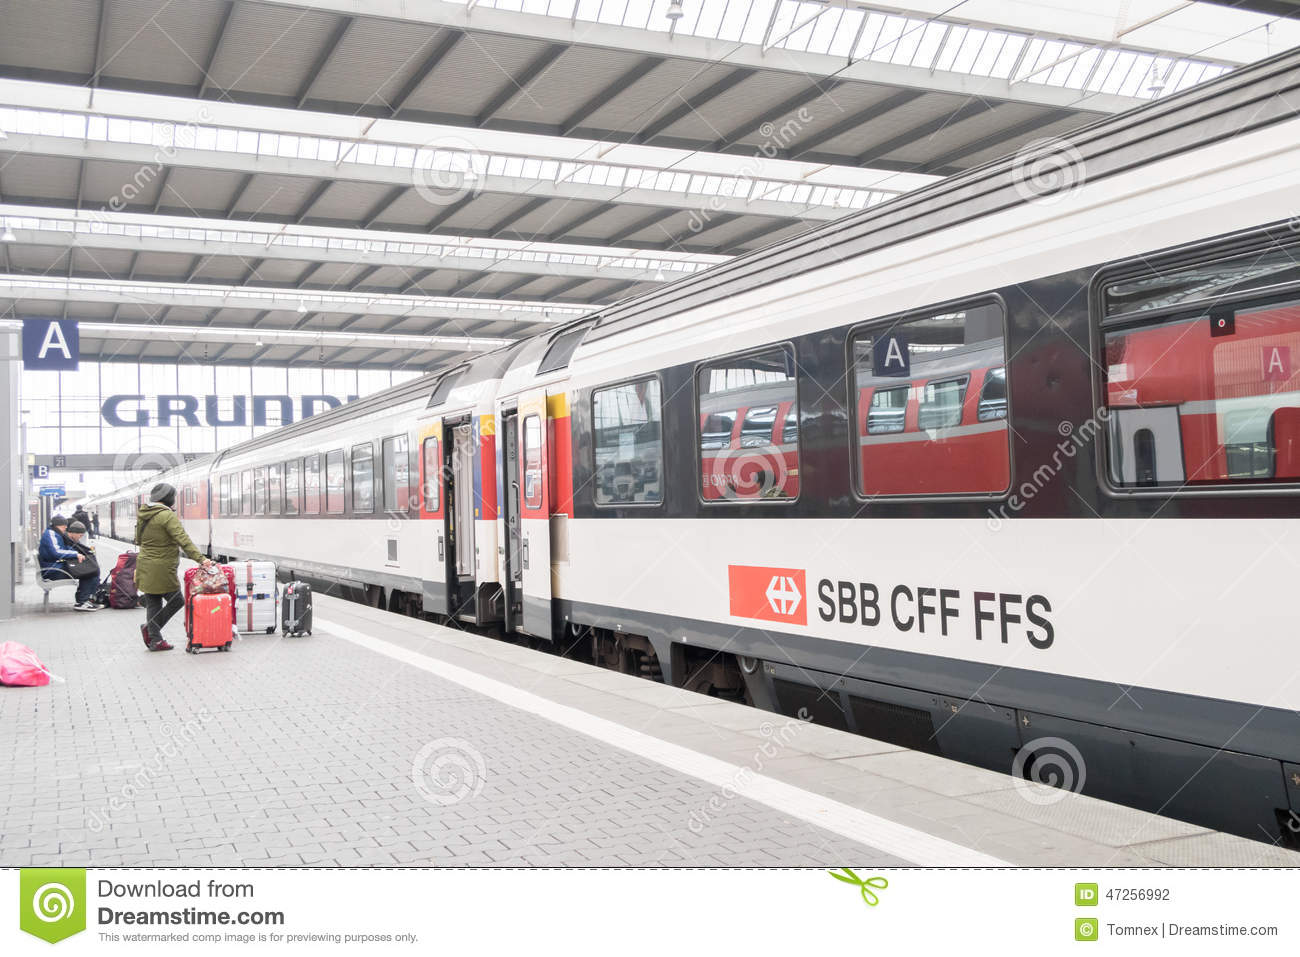 SBB launches track and trace app for rail freight operations